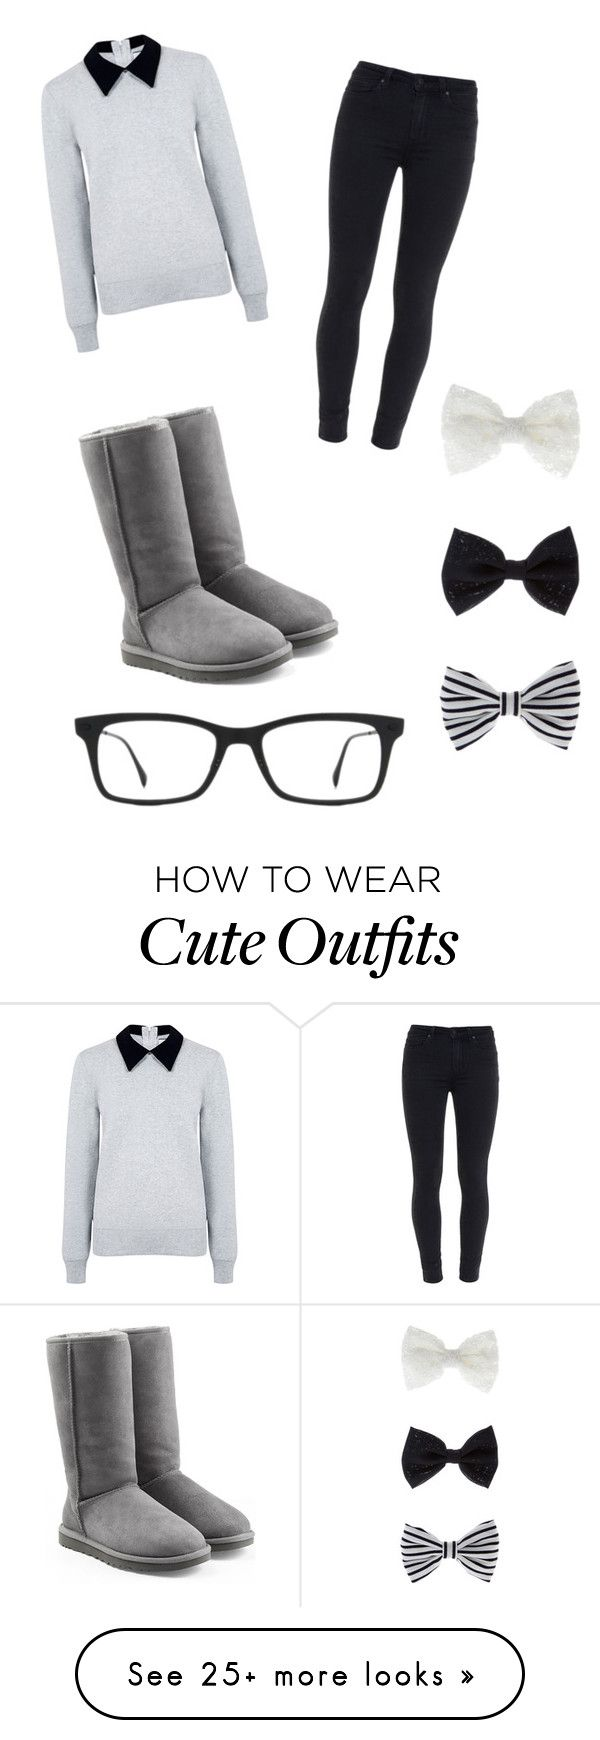 """Cute outfit"" by mayajae on Polyvore featuring Edit, Paige Denim, UGG Australia, Accessorize and Ray-Ban"